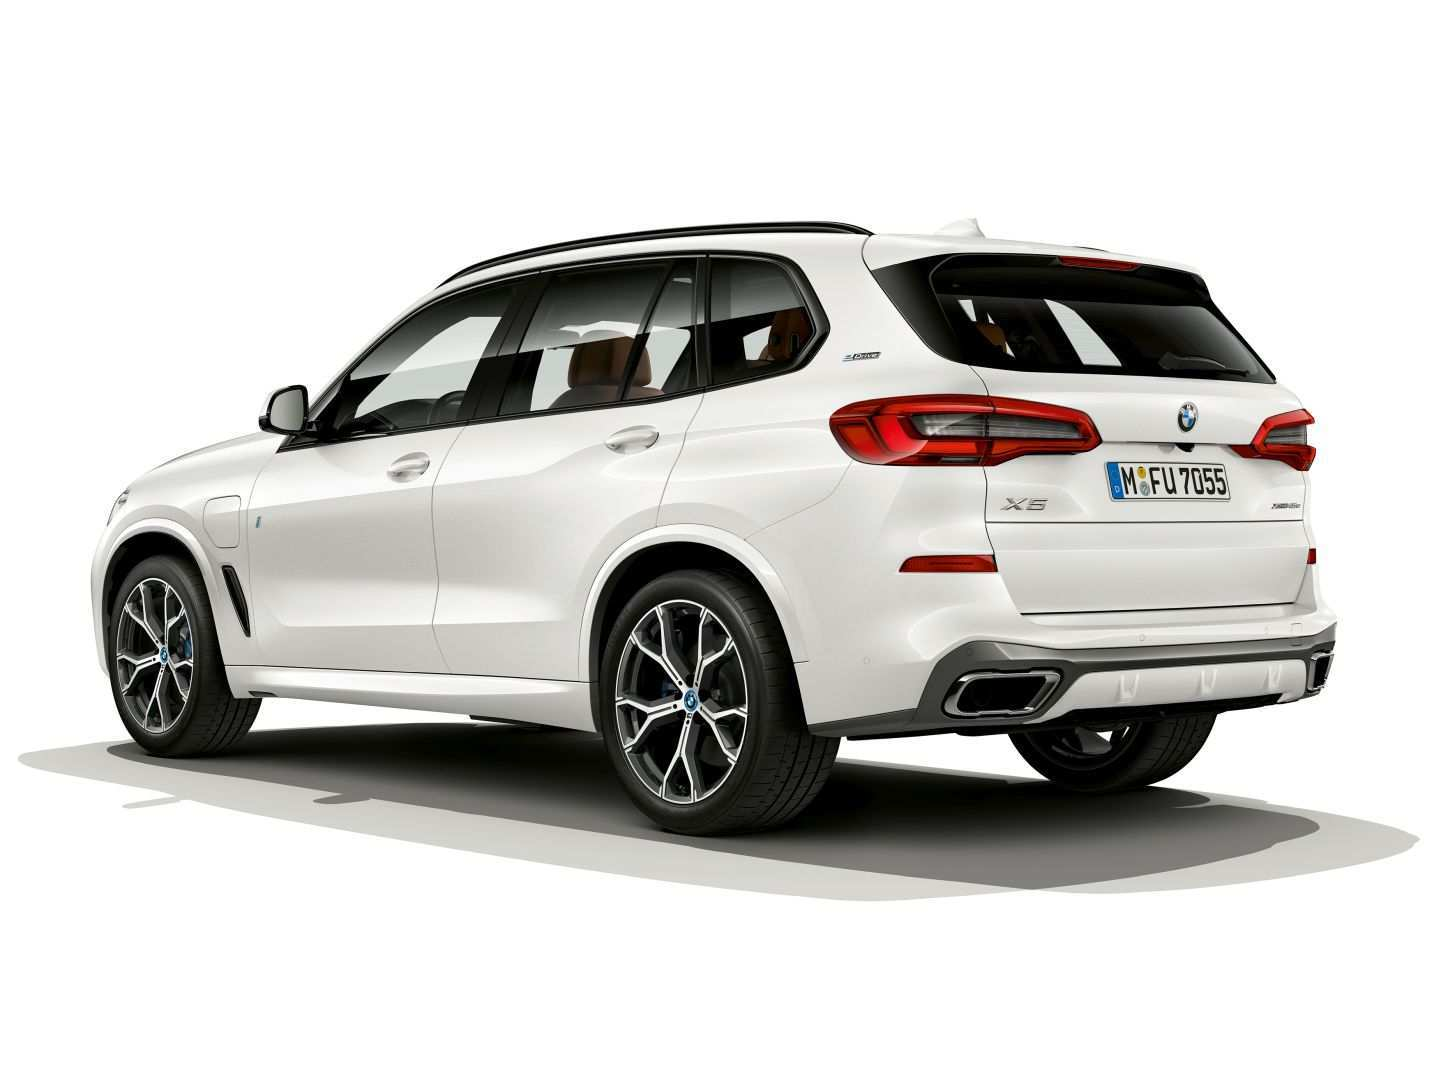 97 Great 2020 Bmw X3 Electric Redesign and Concept by 2020 Bmw X3 Electric